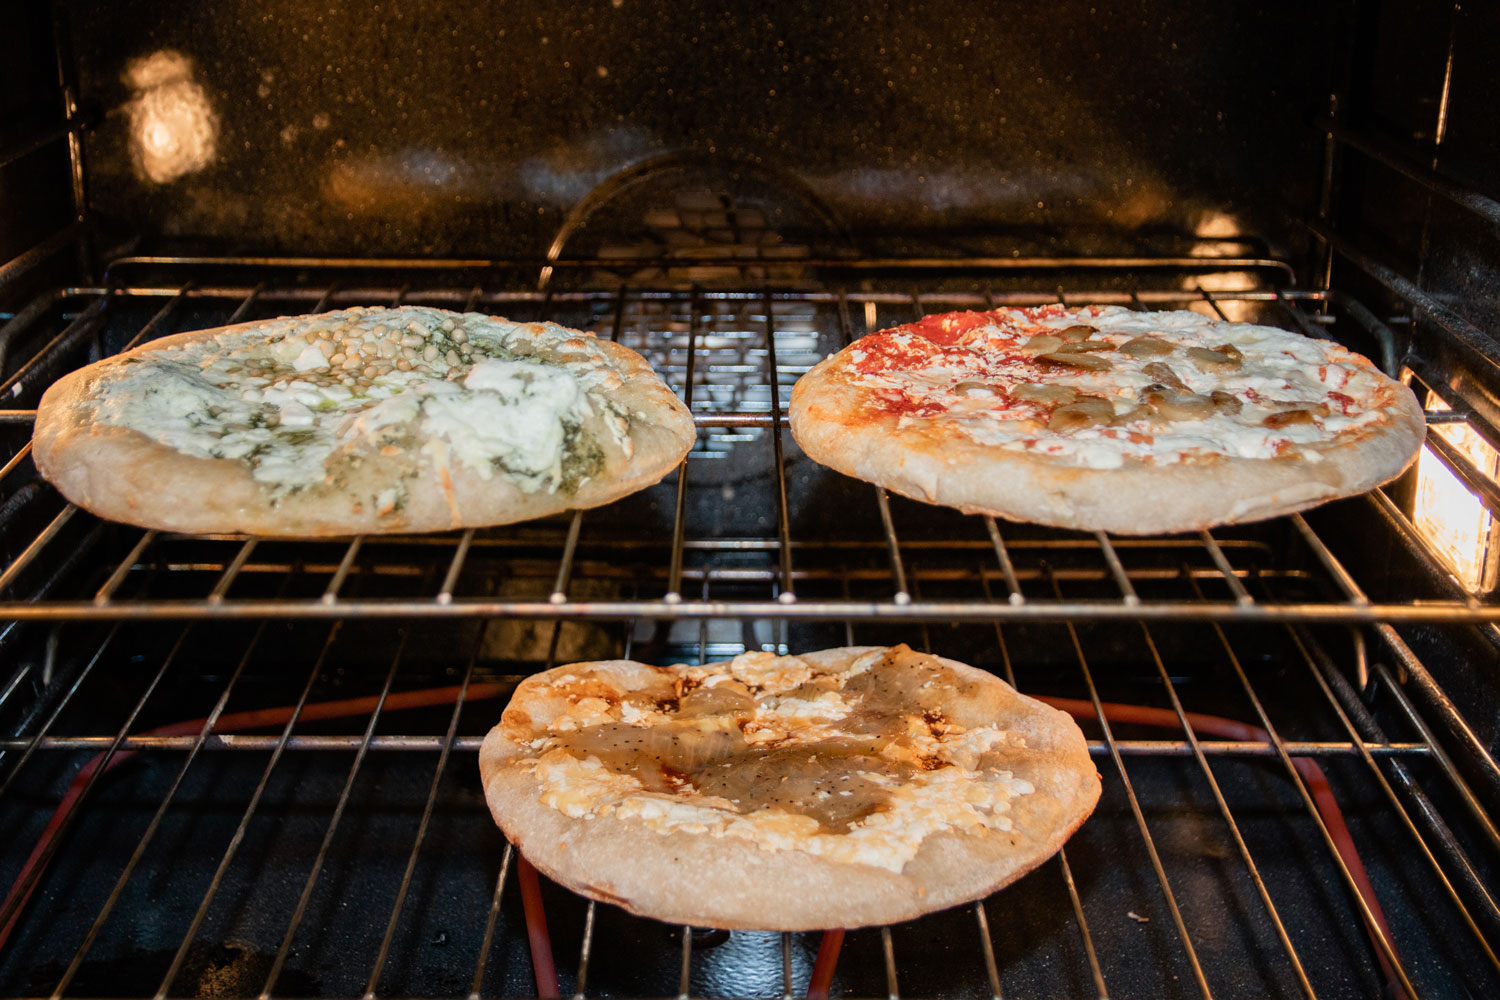 Three pizzas baking in a large oven.